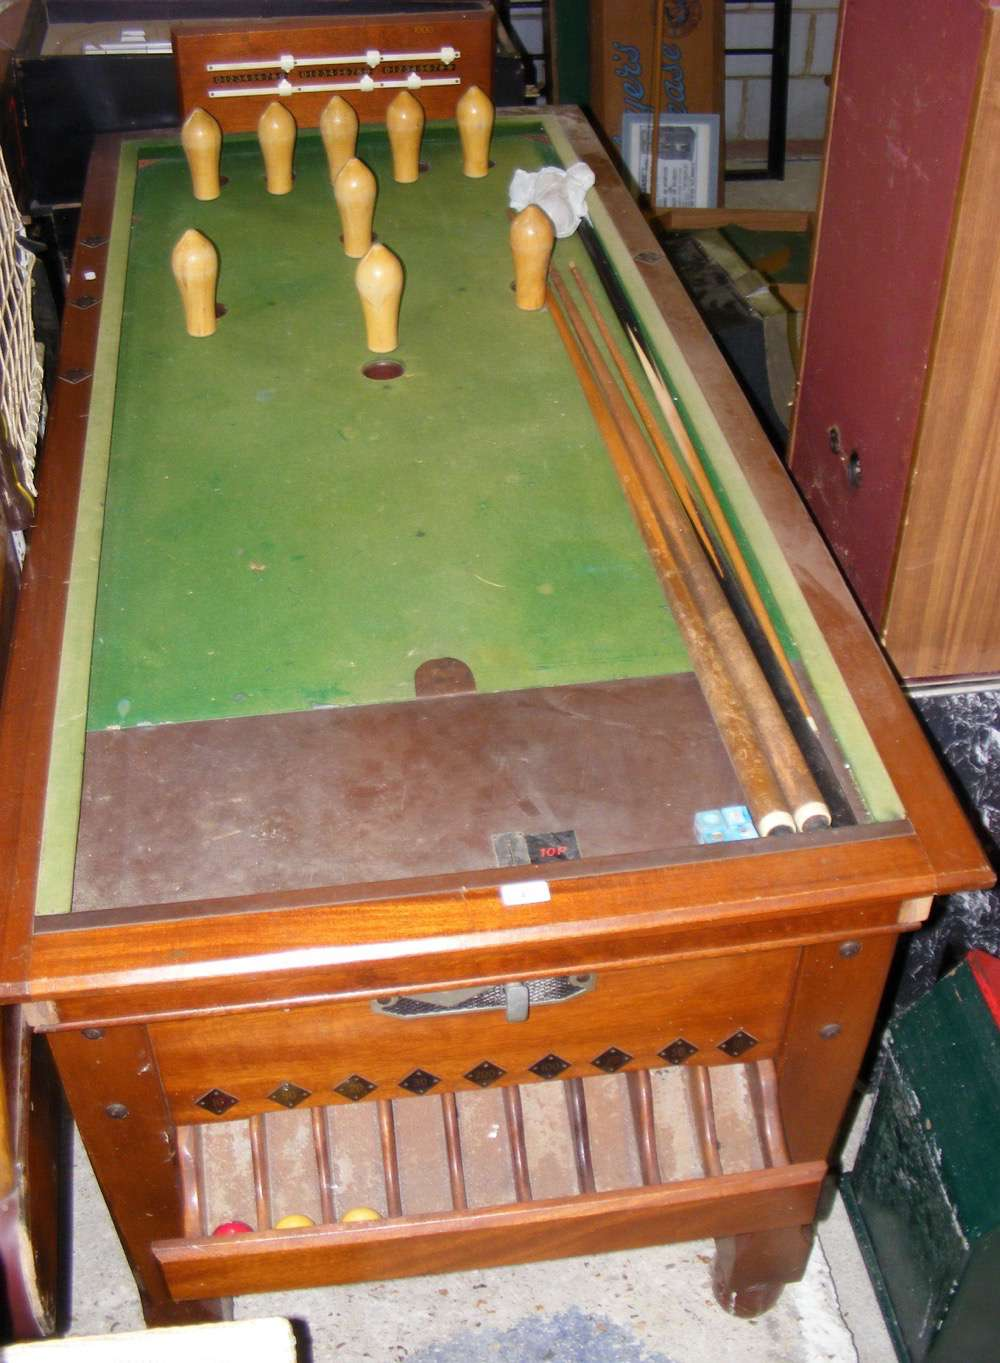 Lot 47 - A coin operated bar billiards table - complete with balls and cues